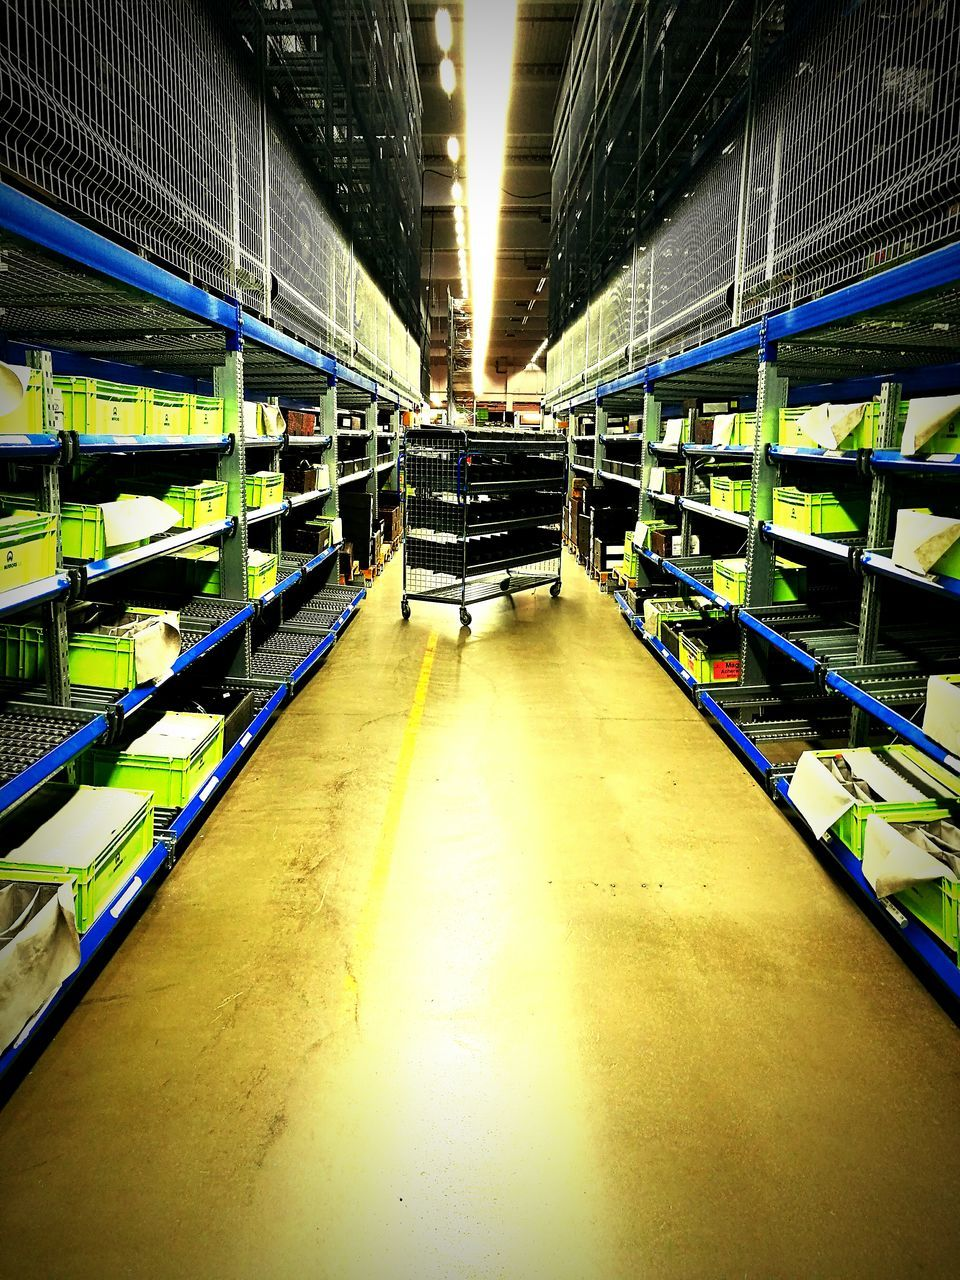 shelf, indoors, store, in a row, illuminated, consumerism, storage compartment, choice, retail, no people, large group of objects, abundance, supermarket, day